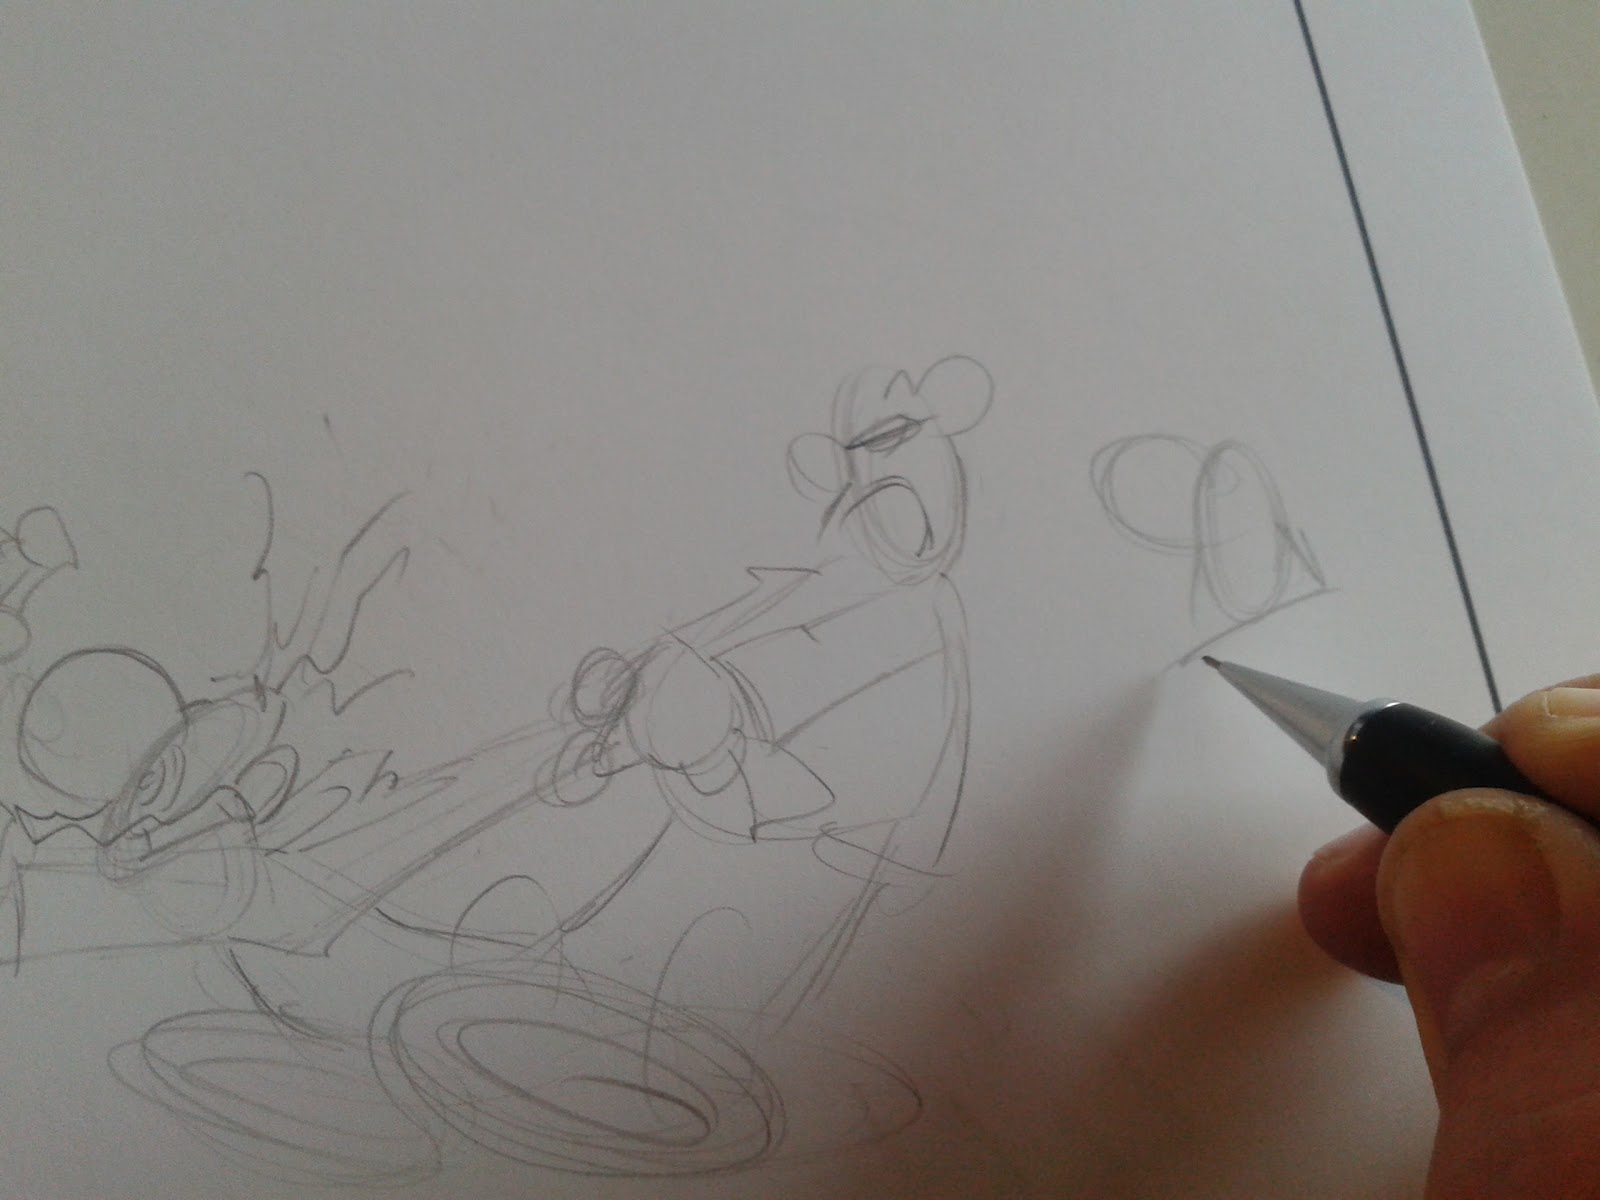 Diary Of A Cartoonist How To Draw An Editorial Cartoon Part 1